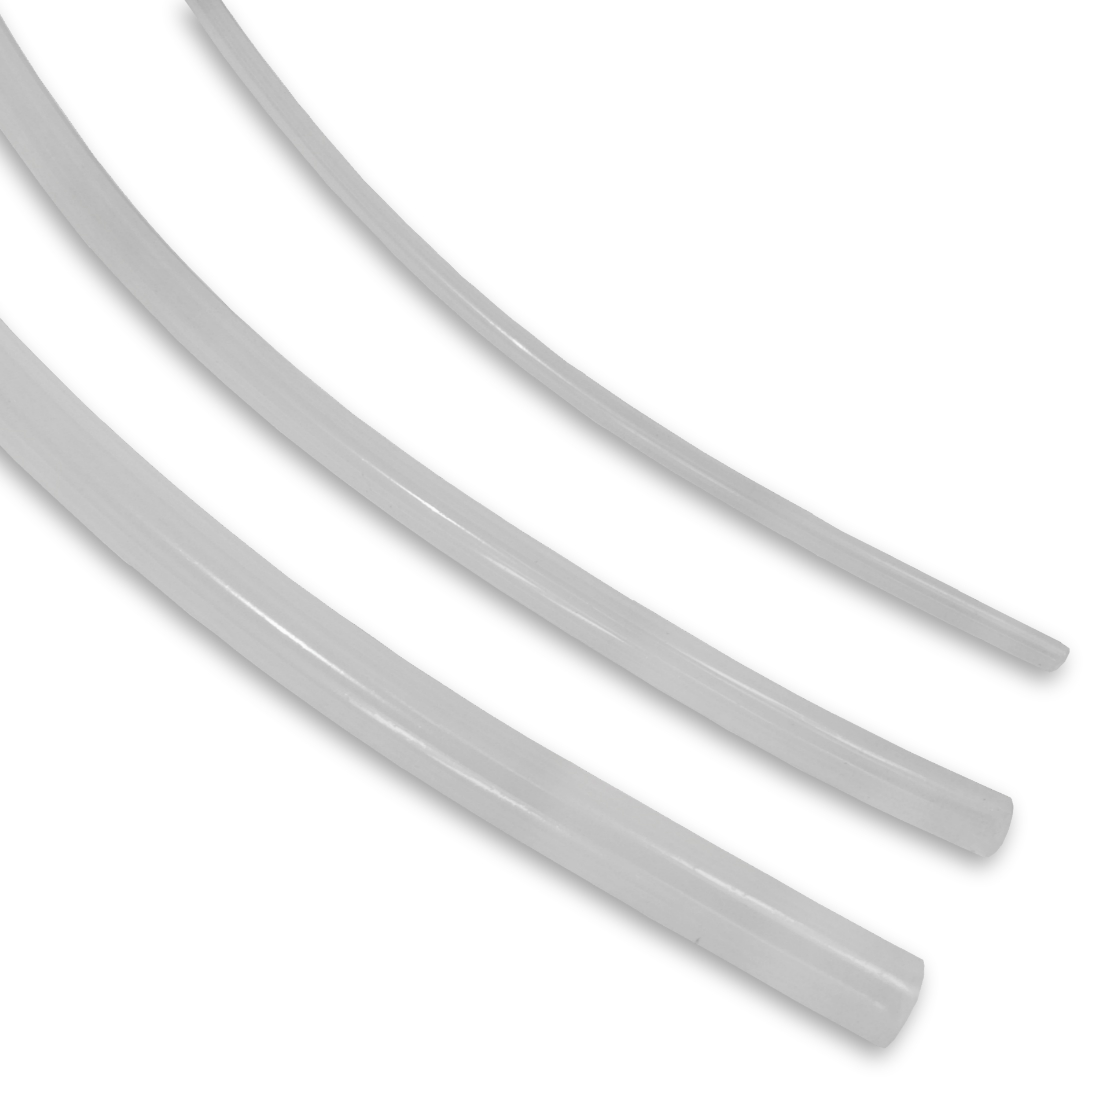 Translucent Platinum Cured Silicone Tubing